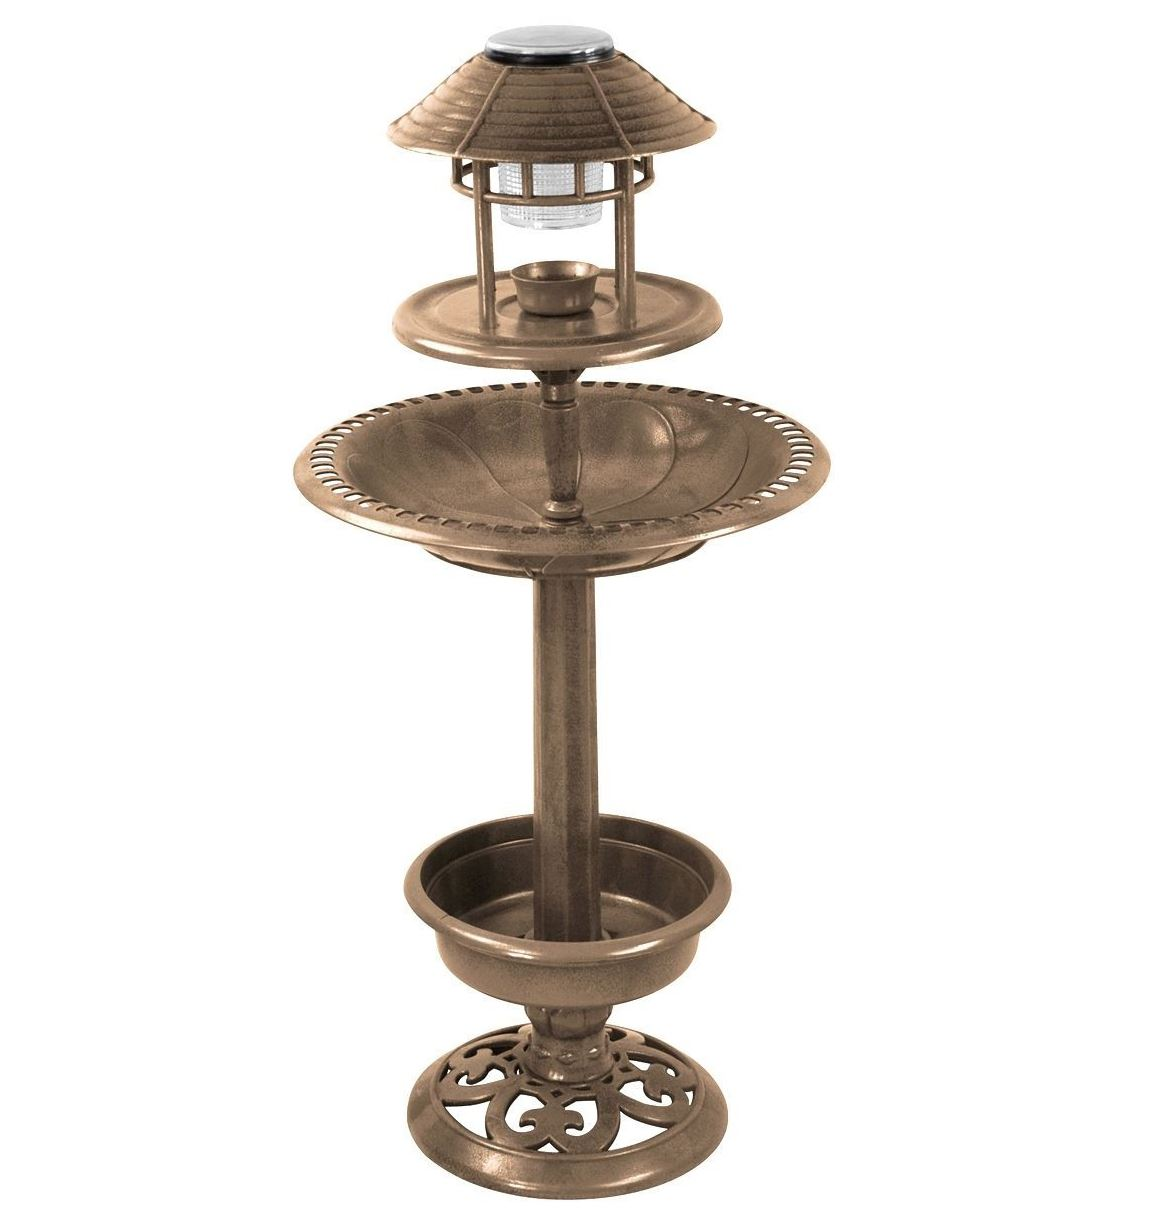 Bird-Bath-Feeder-Bowl-With-Solar-Light-Garden-amp-Patio-Bird-Feeding-Table-Station thumbnail 10